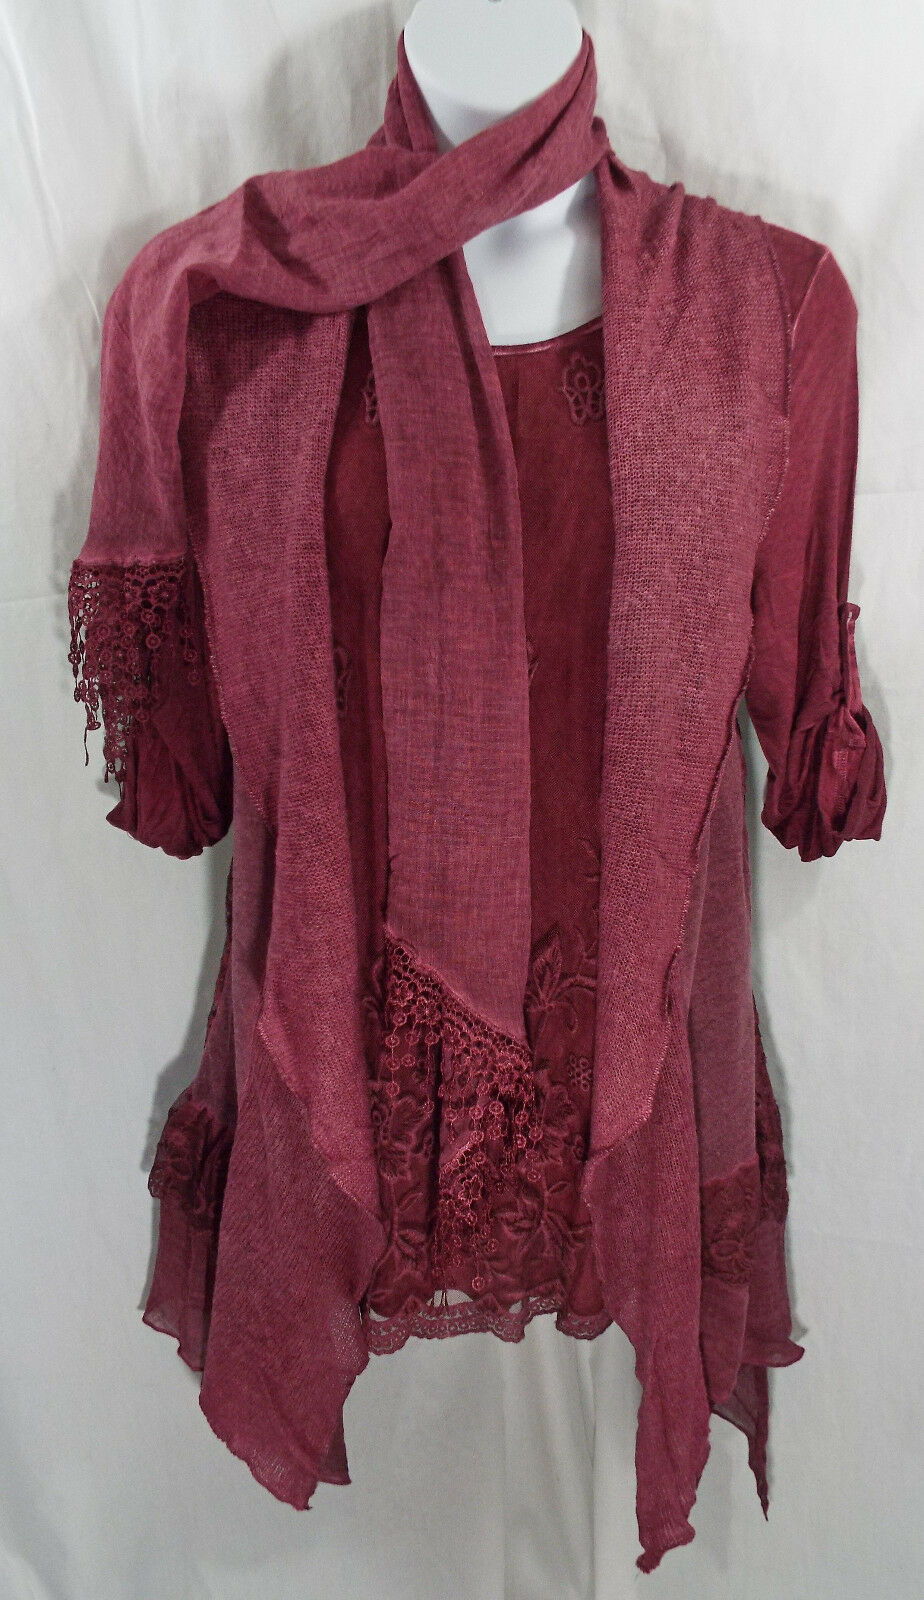 3 Piece Blouse Vest Scarf Hand Dyed Set in Wine by Fantazia